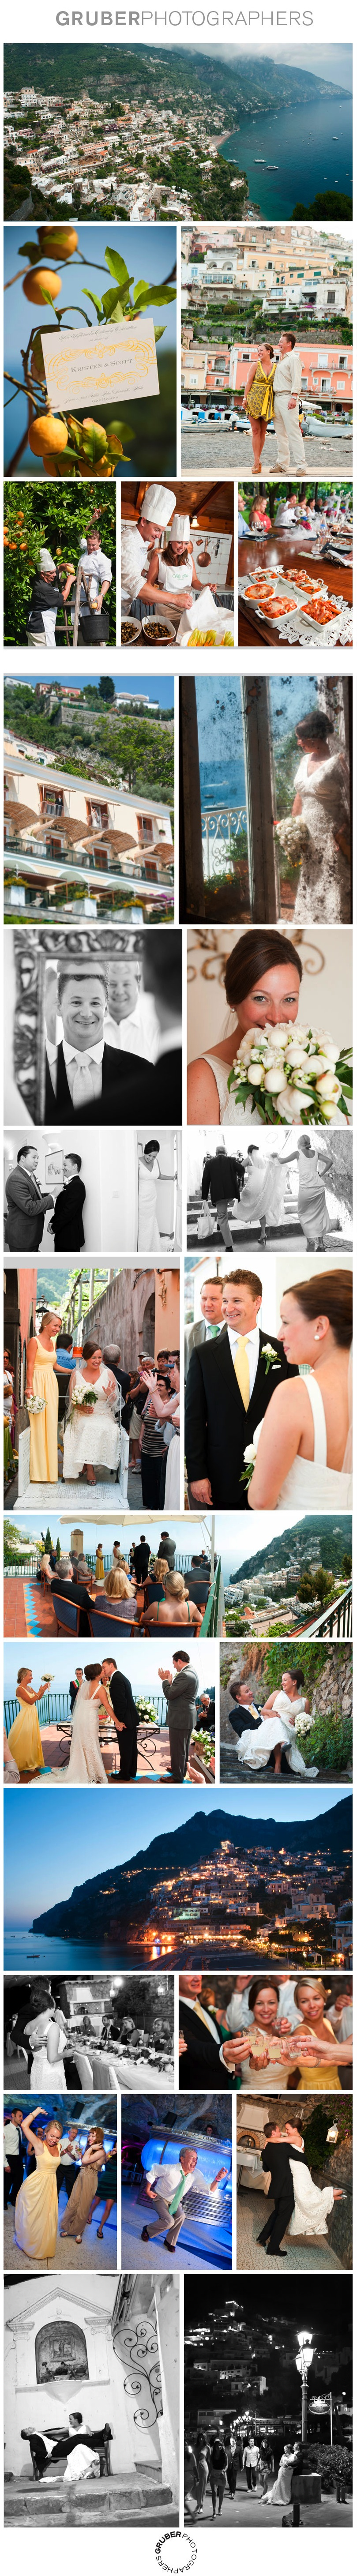 Wedding Photographers for Destination Weddings